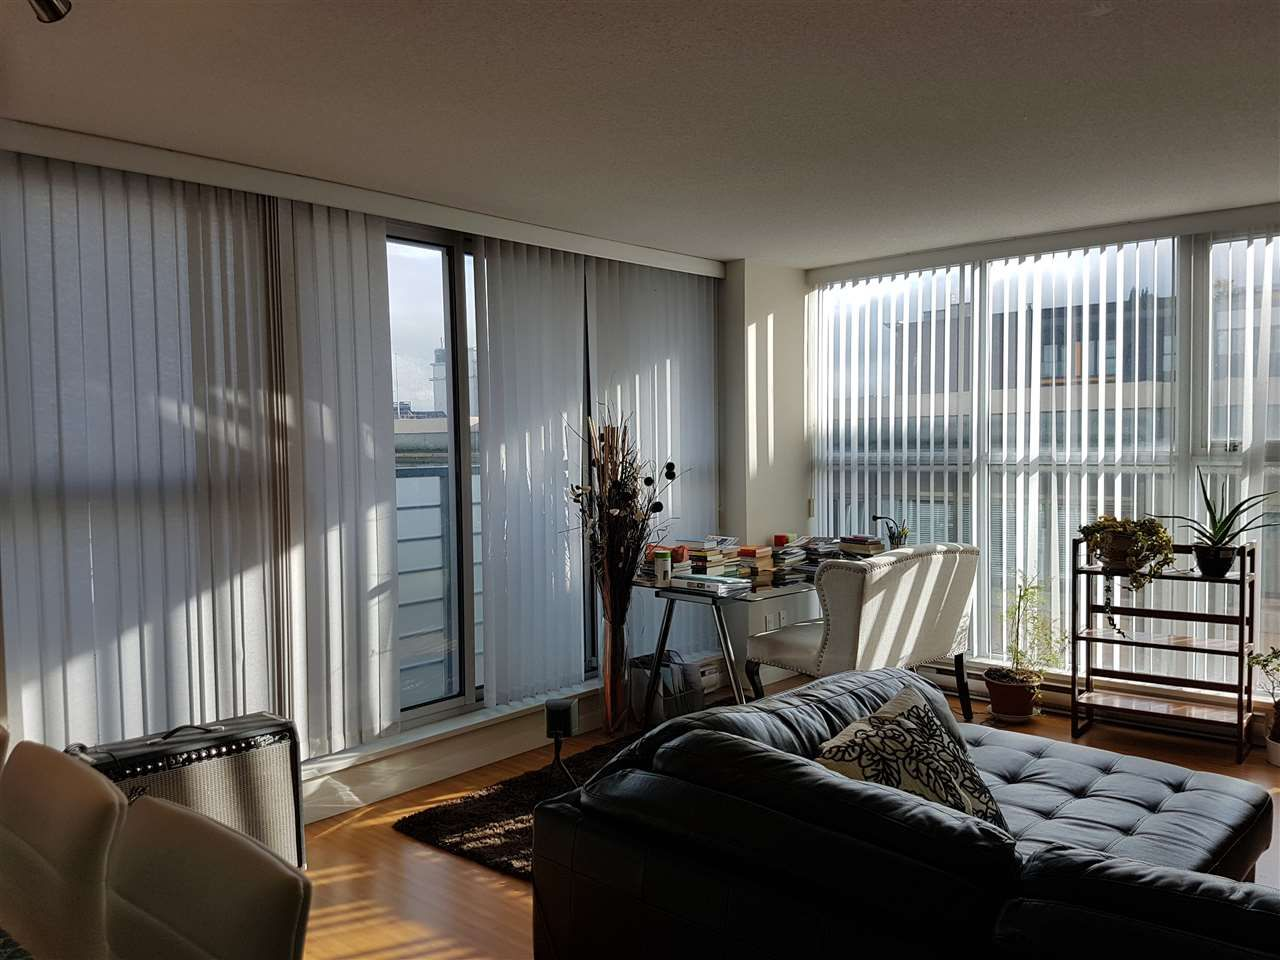 """Main Photo: 801 168 POWELL Street in Vancouver: Downtown VE Condo for sale in """"SMART"""" (Vancouver East)  : MLS®# R2234284"""